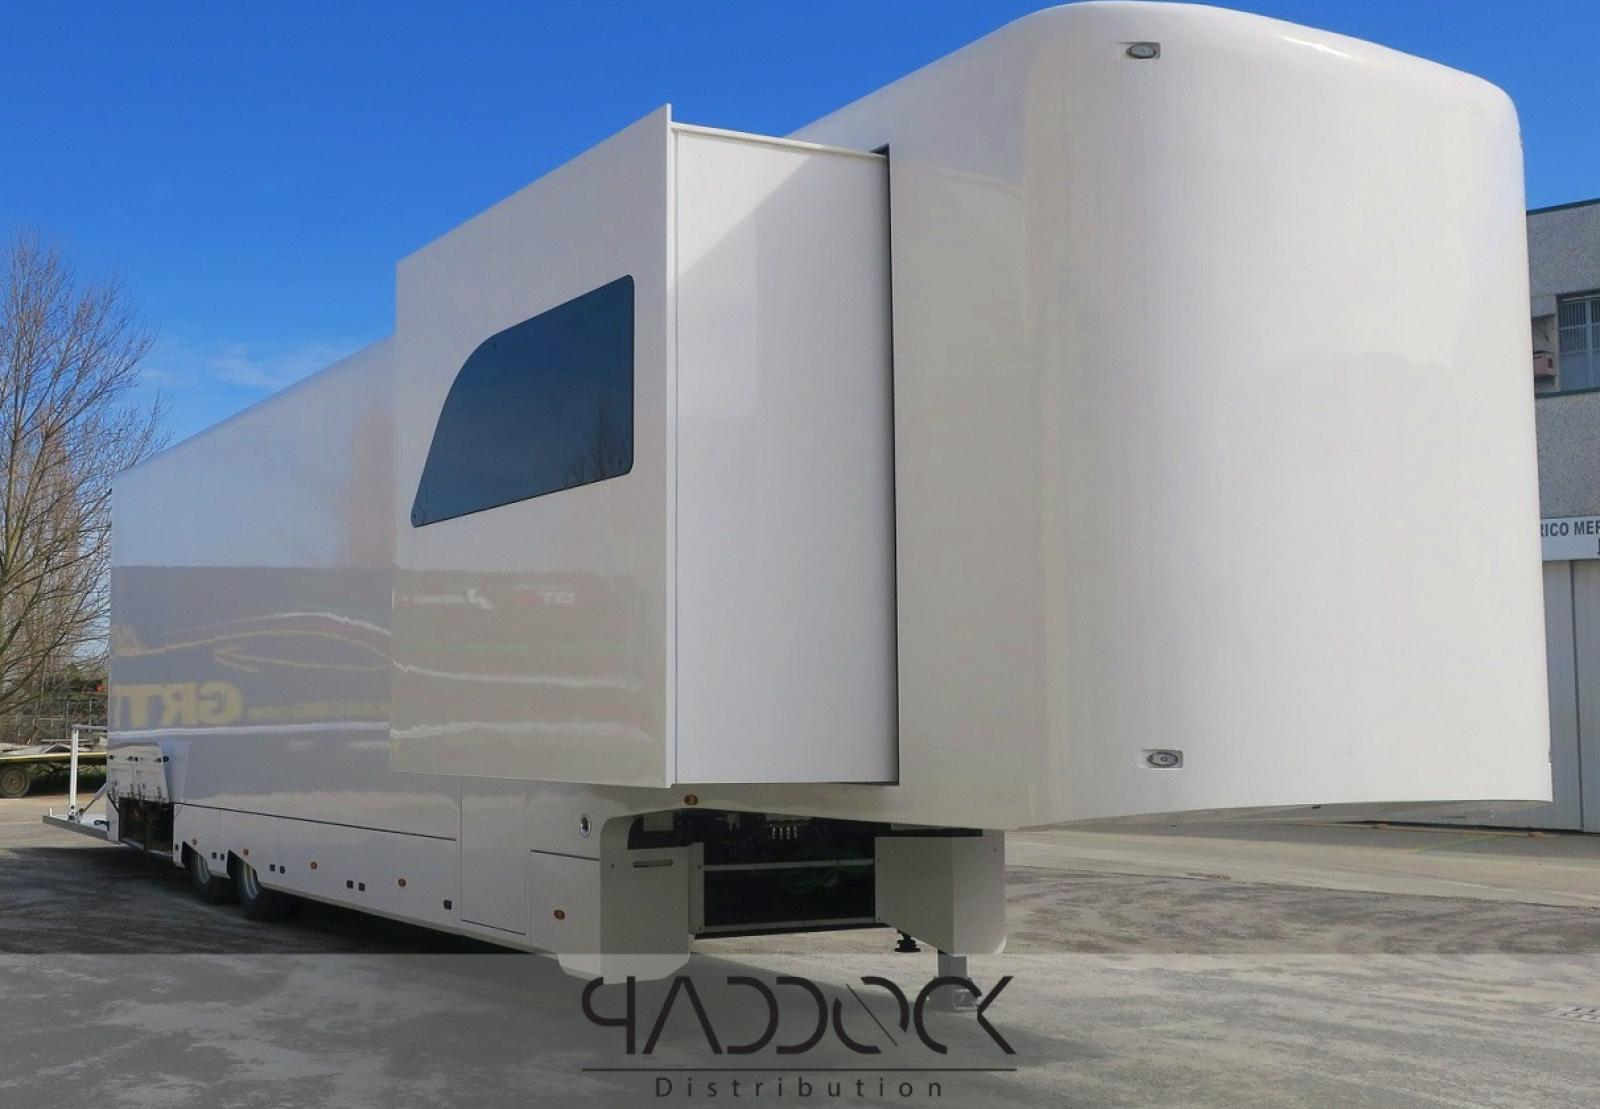 Z2 SLIDE 4699 ASTA CAR TRAILER BY PADDOCK DISTRIBUTION - 1